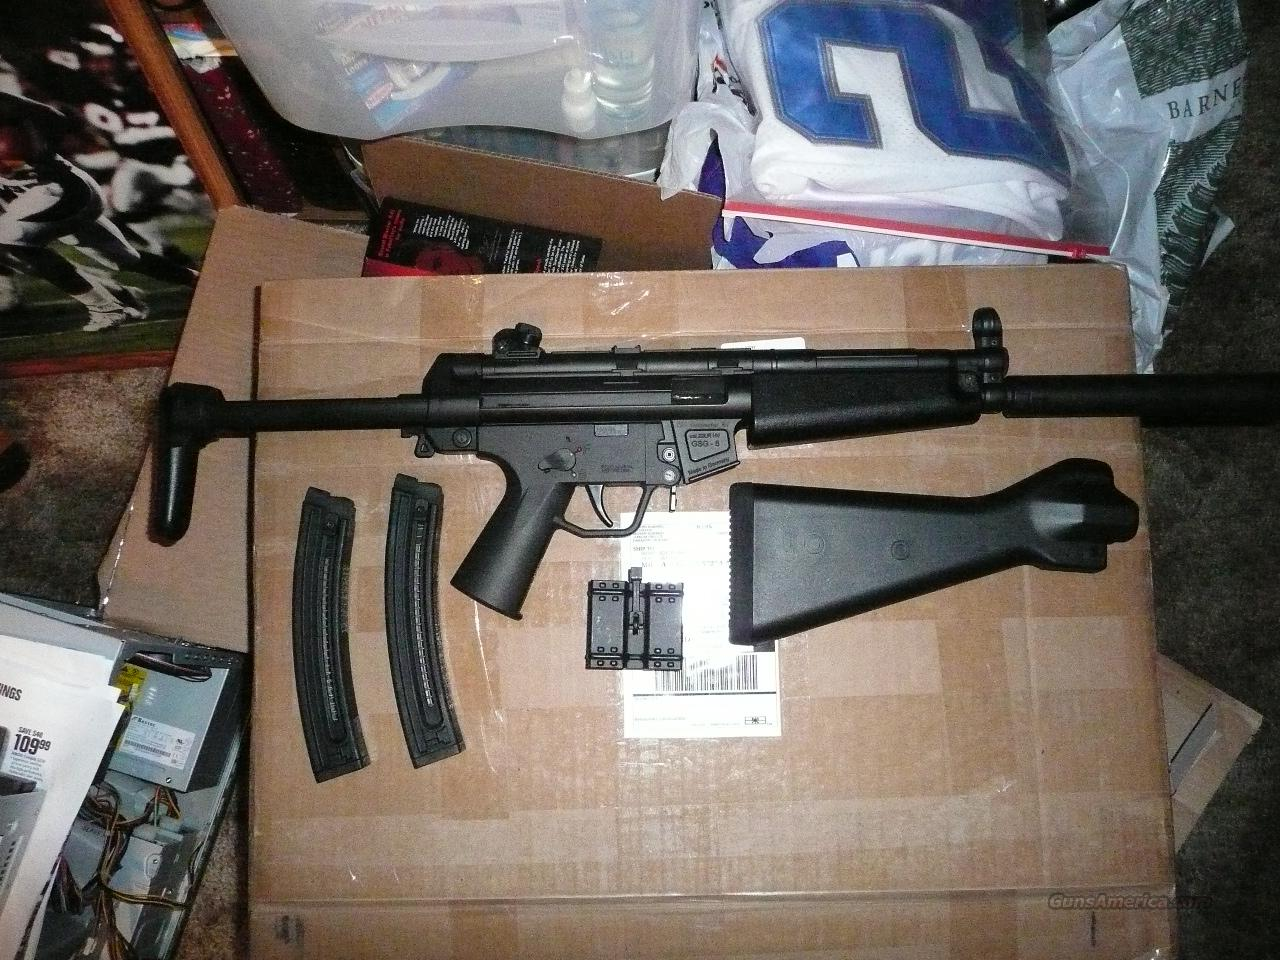 AMERICAN TACTICAL IMPORTS GSG-5 MP5 22LR USED  Guns > Rifles > American Tactical Imports Pistols